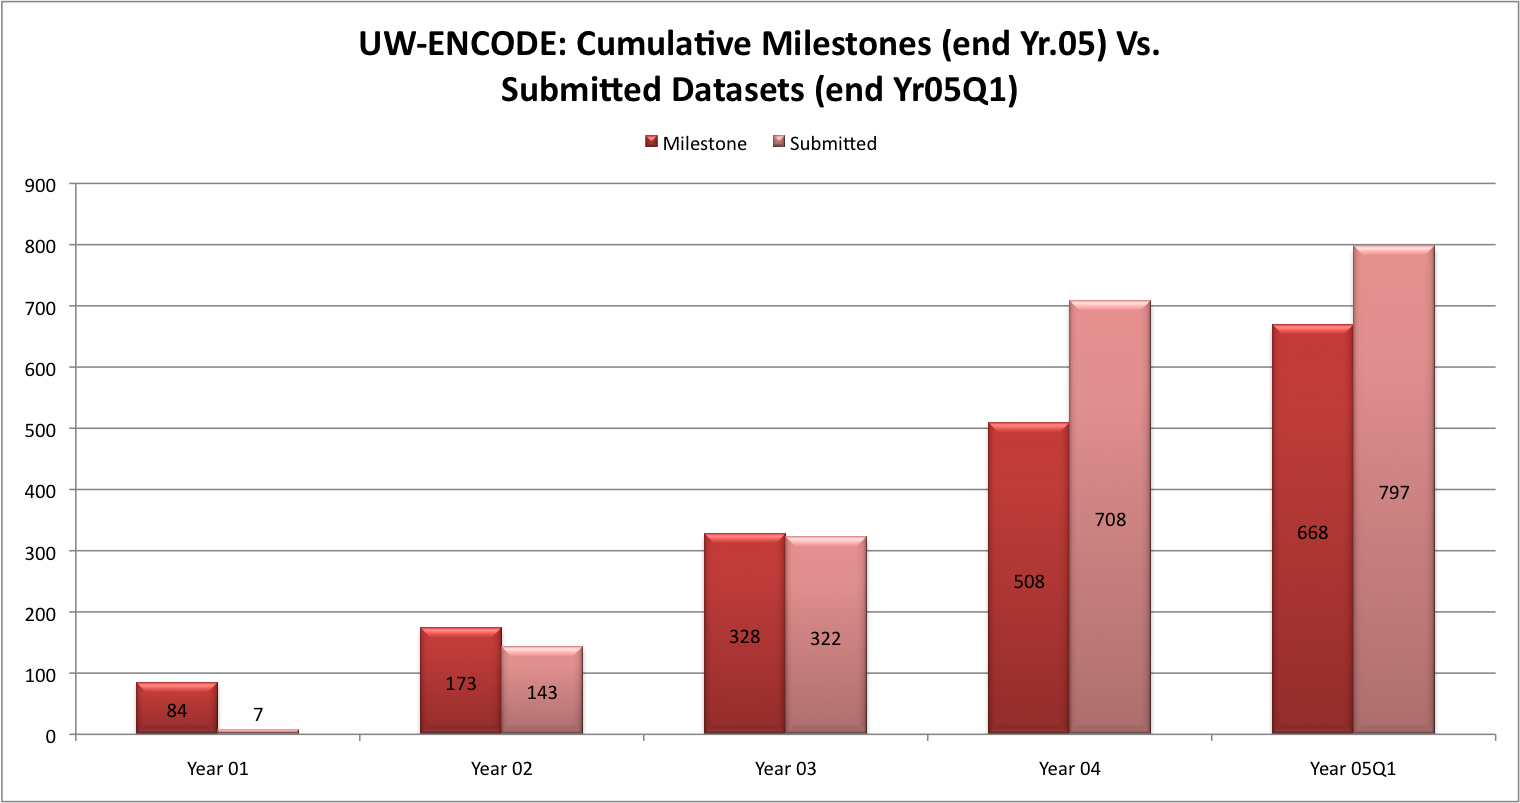 UW-ENCODE: Cumulative Milestones (end Yr.05) Vs.  Submitted Datasets (end Yr05Q1): Yearr 01	DnaseI Milestones	12	DNaseI submitted	7	ChIP-Seq Milestones	60	ChIP-Seq Submitted	0	Exon Arrays Milestones	12	DGF Milestones	0	DGF Submitted	0